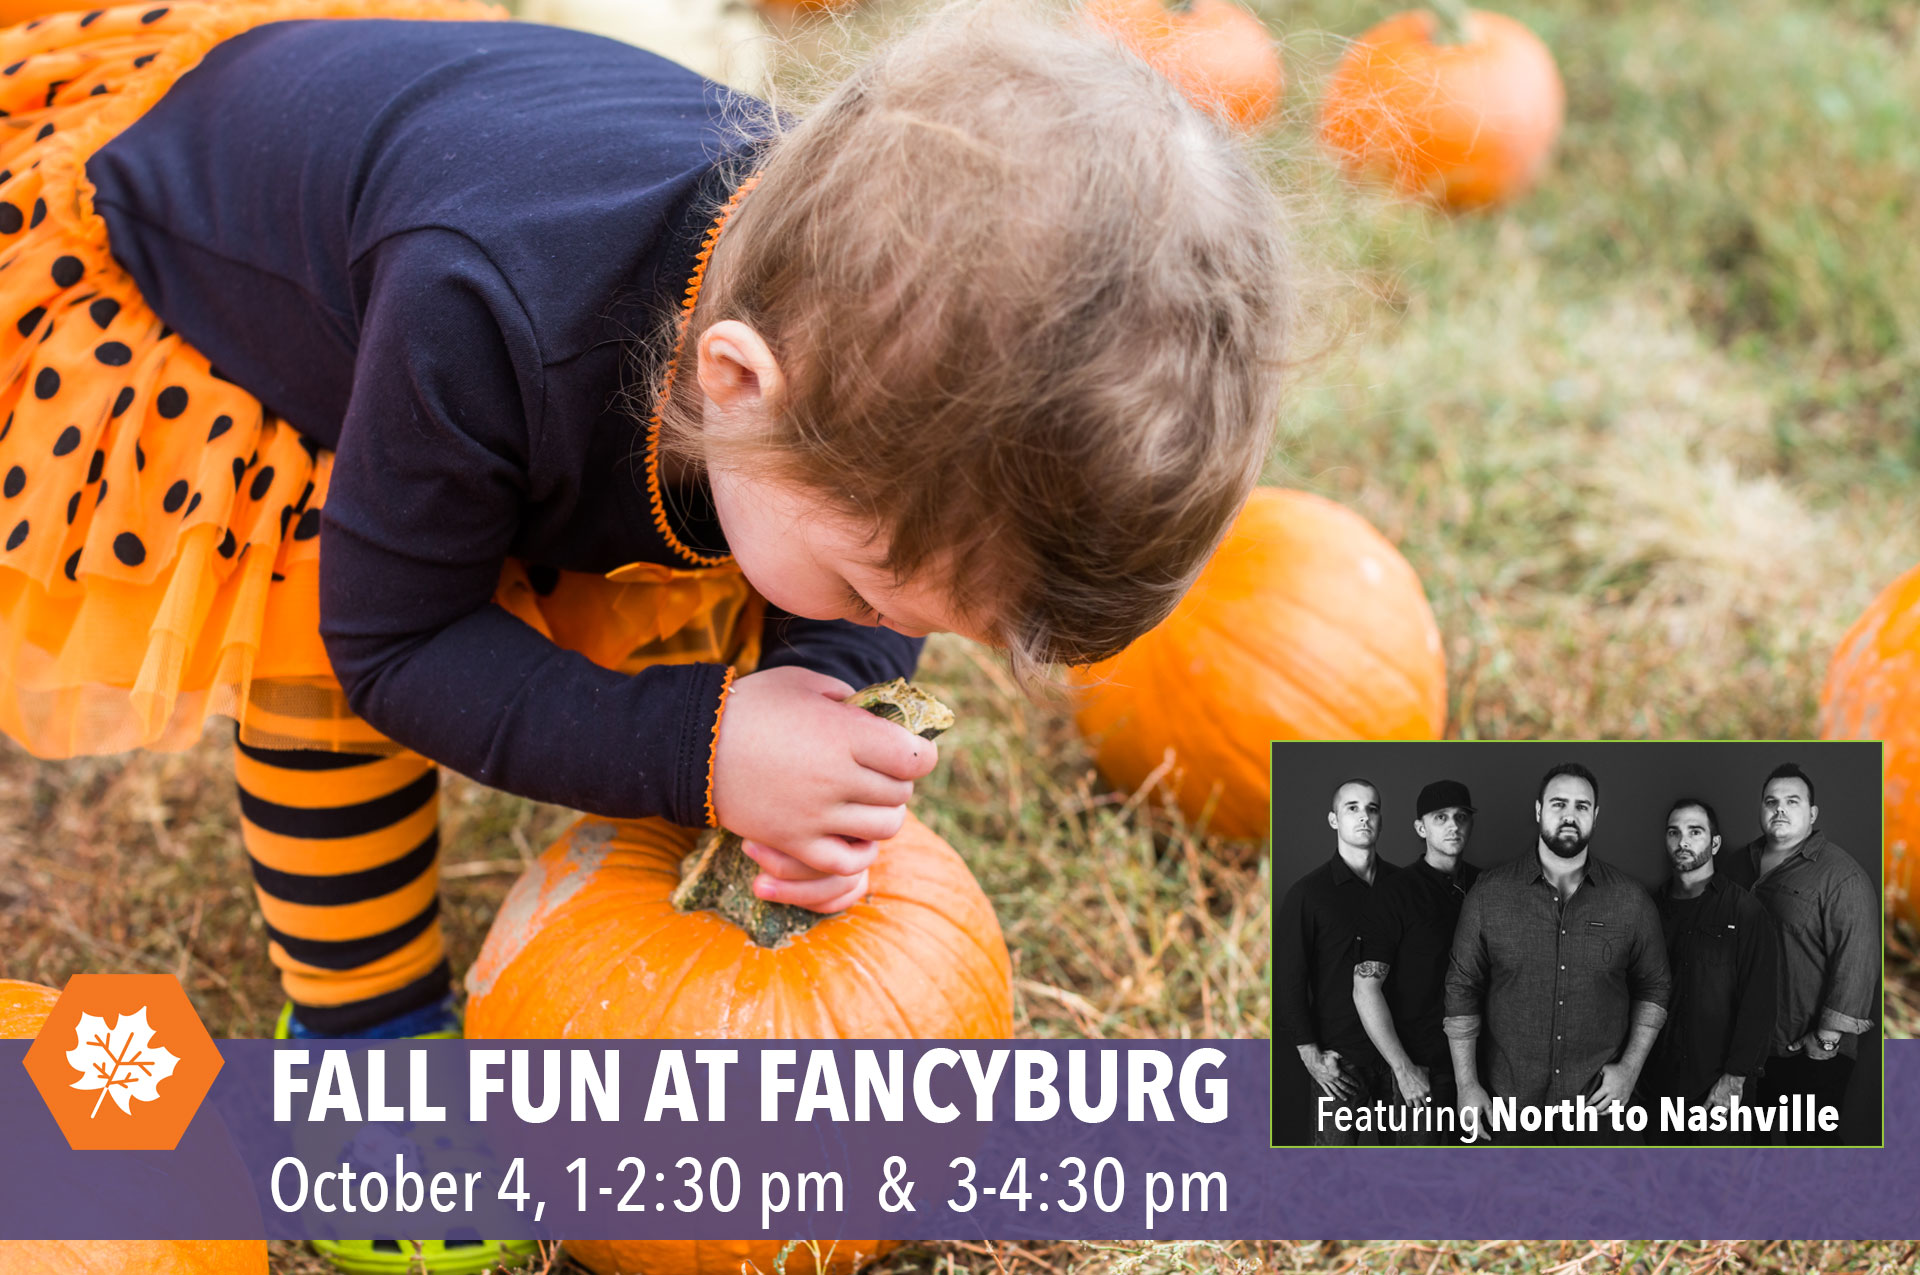 Fall Fun At Fancyburg